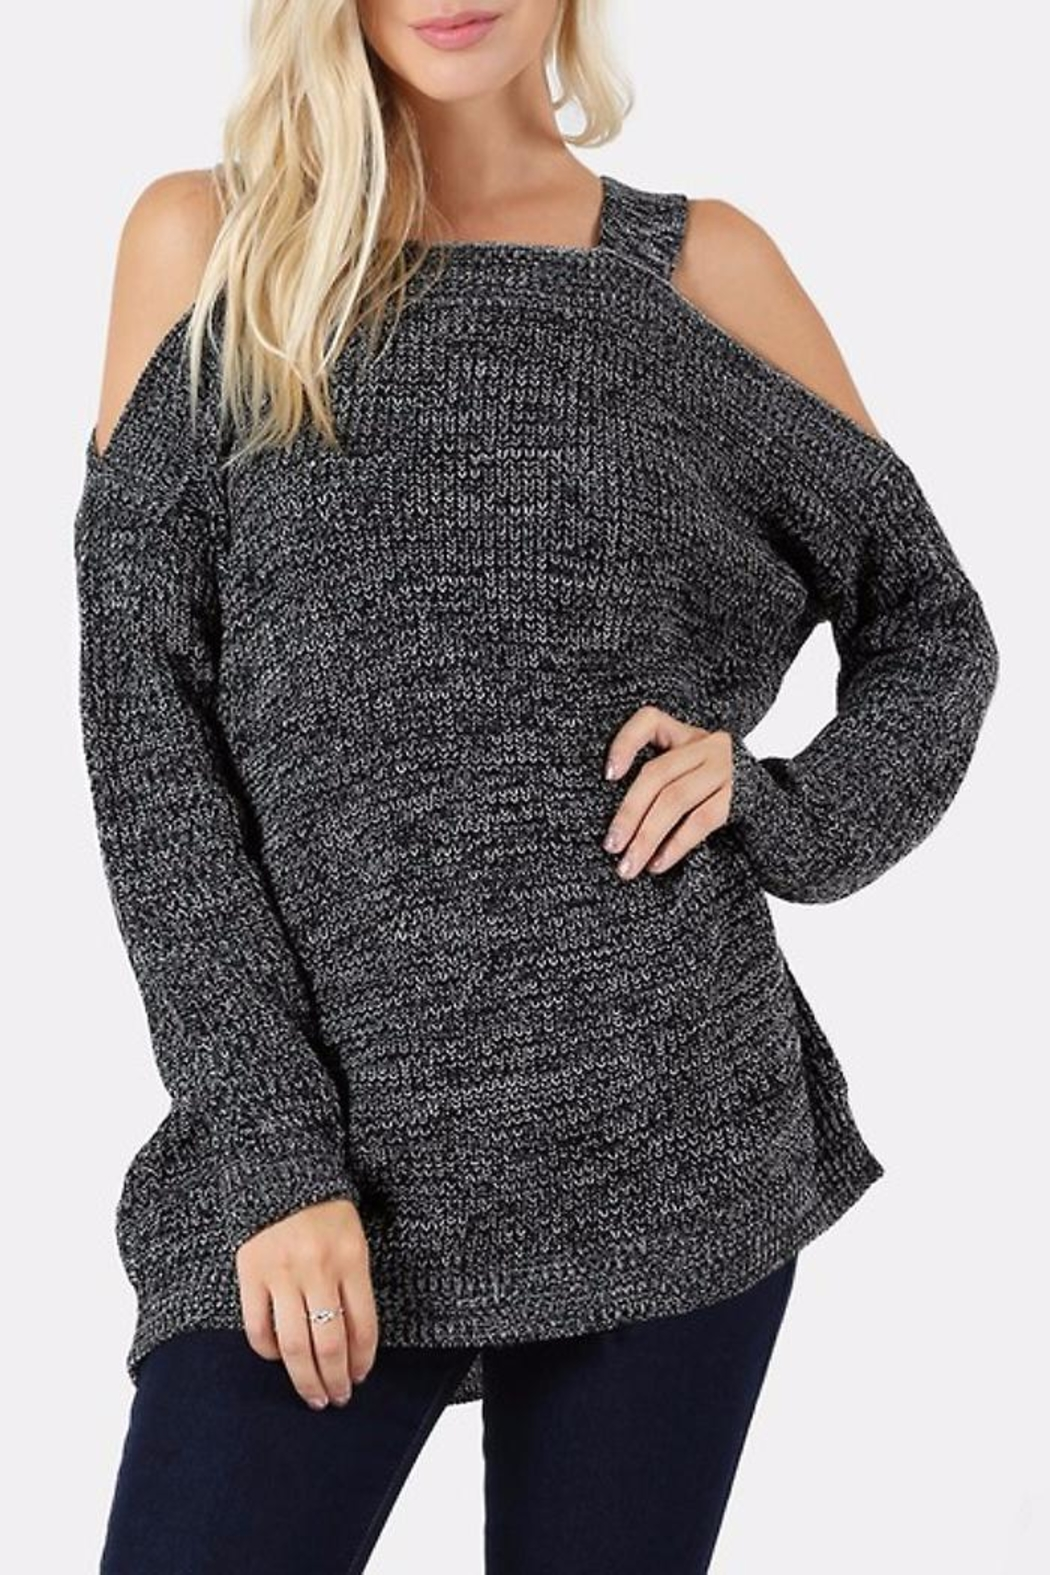 People Outfitter My Chunky Sweater - Main Image